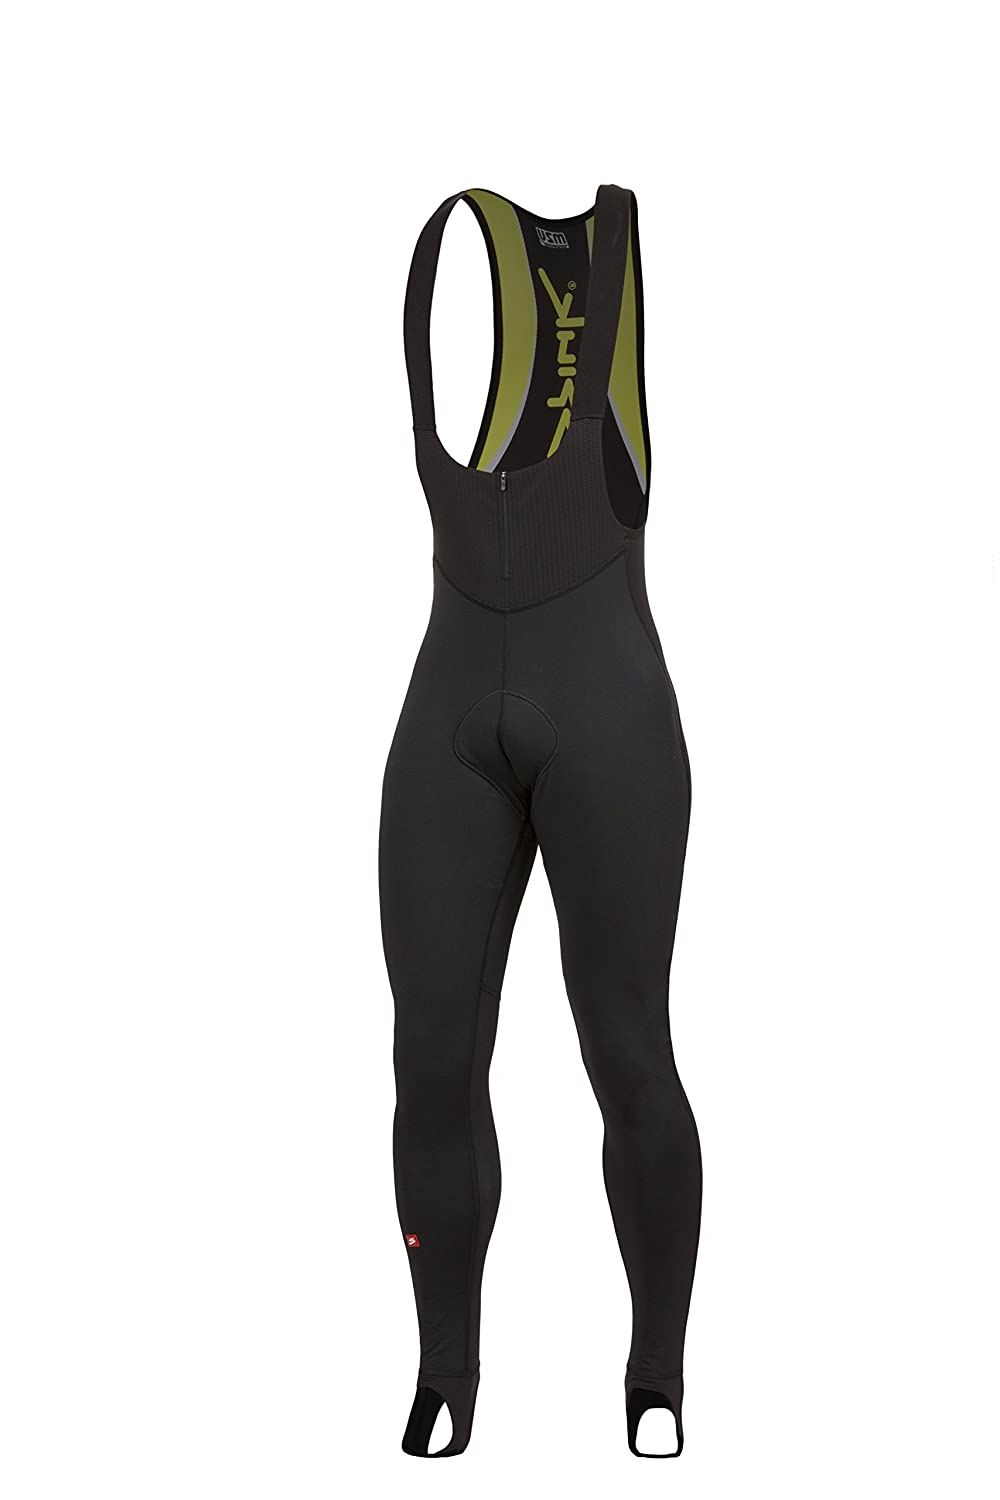 Spiuk Elite Plus Bibtights, gelb, schwarz, Gr.